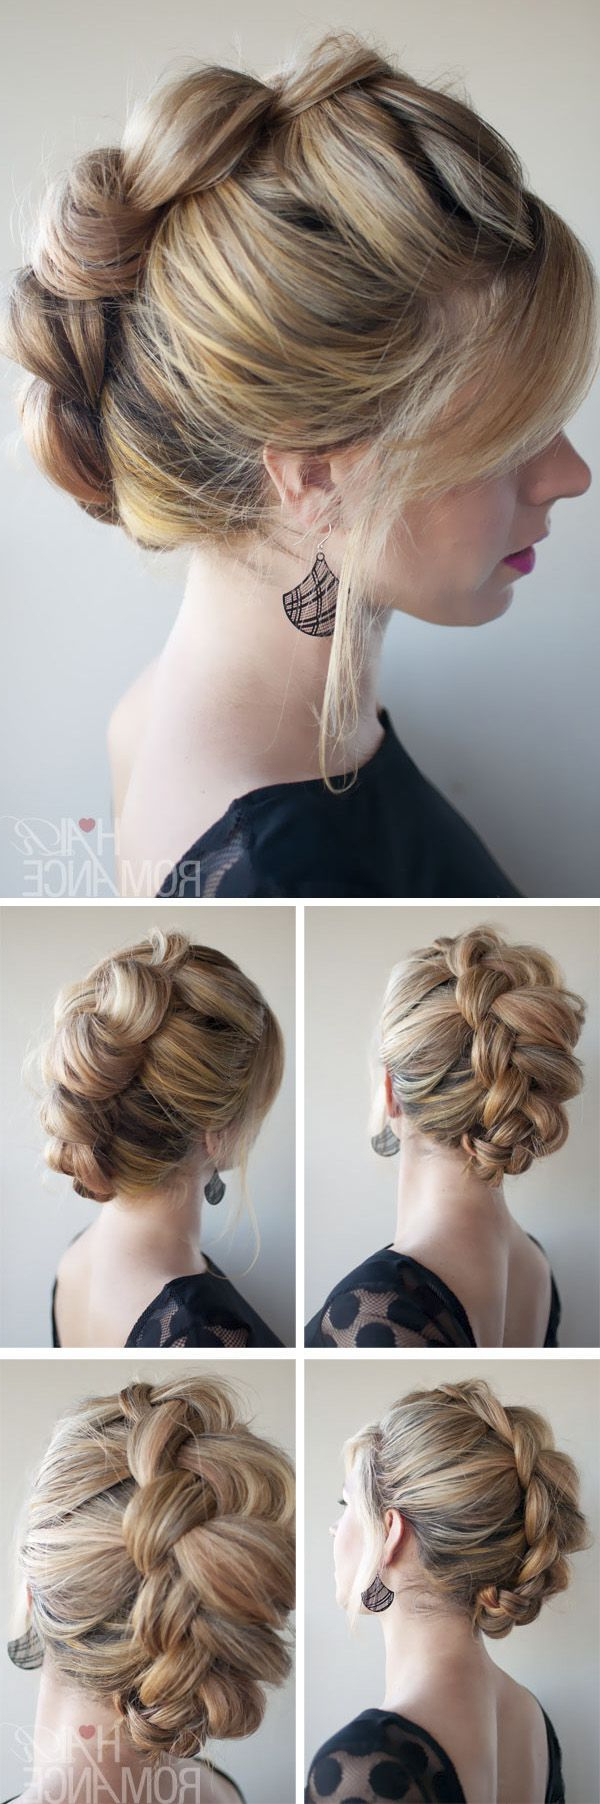 66 Best Updos Hairstyles Images On Pinterest Inside 2017 Athenian Goddess Faux Hawk Updo Hairstyles (View 3 of 20)